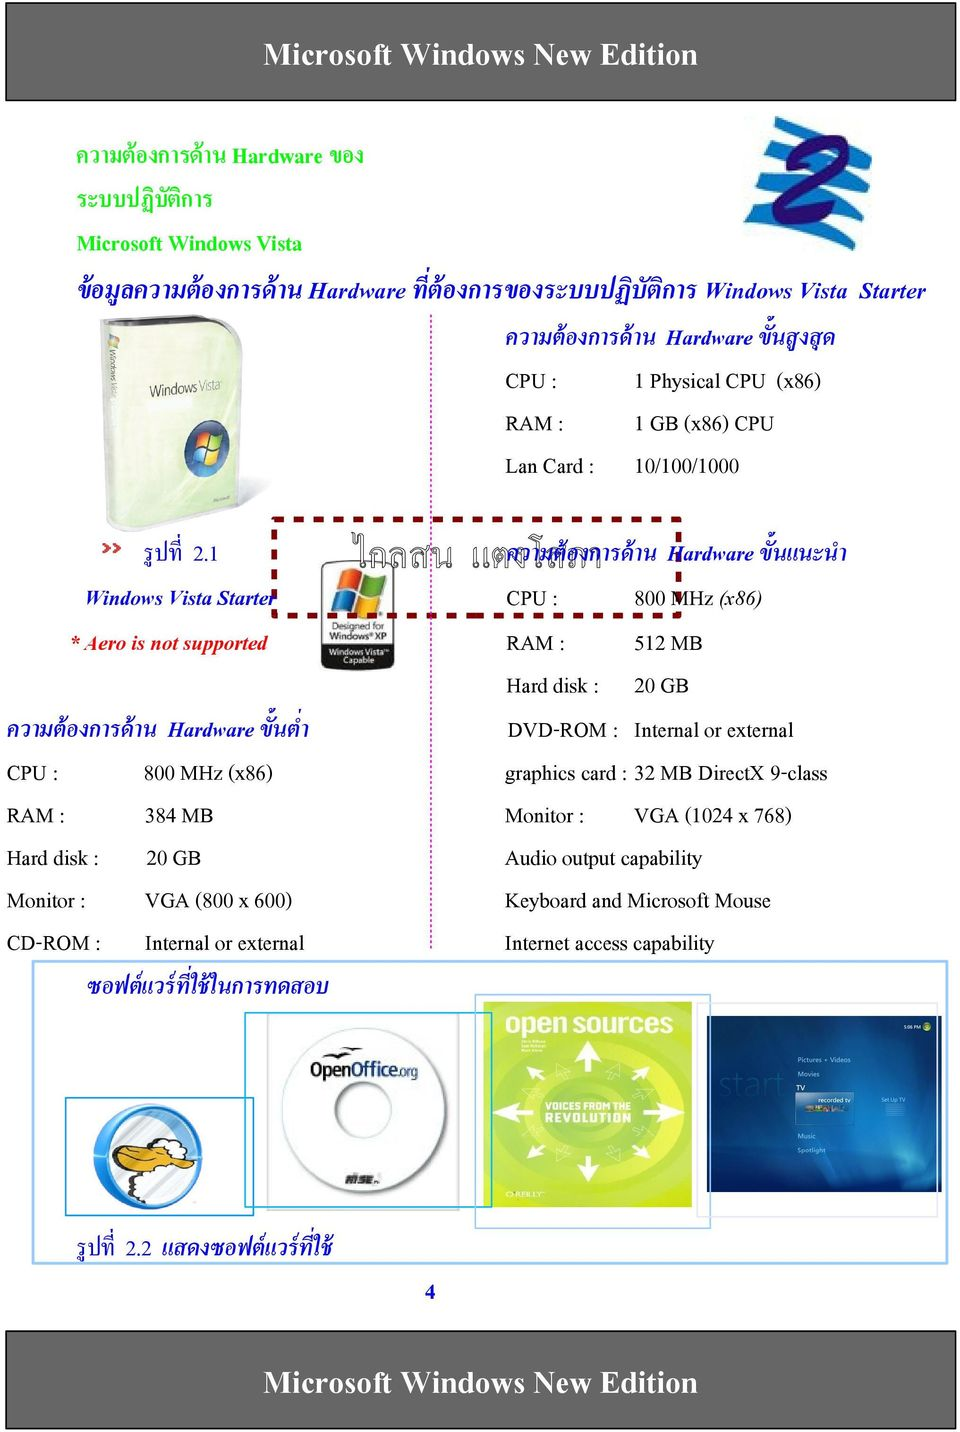 1 Windows Vista Starter * Aero is not supported ความตองการดาน Hardware ขนแนะนFา CPU : 800 MHz (x86) RAM : 512 MB Hard disk : 20 GB DVD-ROM : Internal or external graphics card : 32 MB